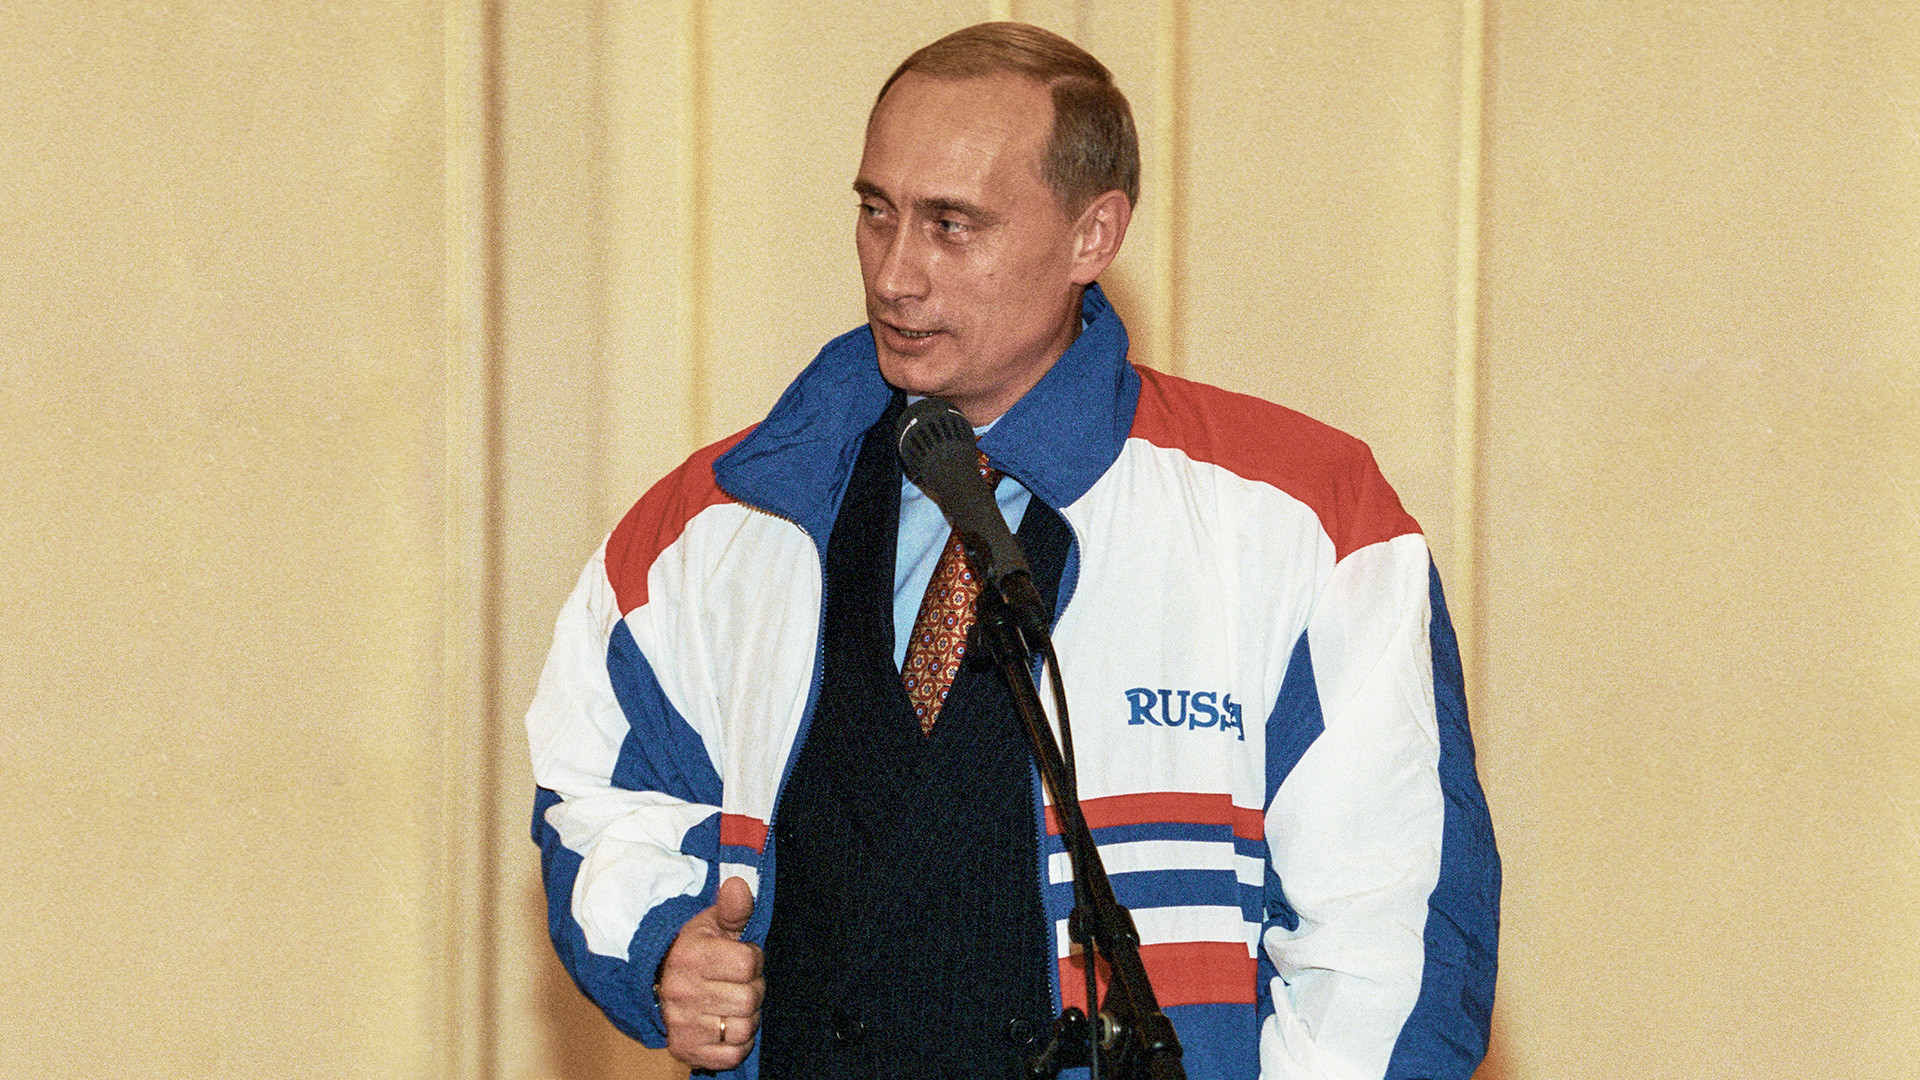 Russian Prime Minister Vladimir Putin speaks to athletes in front of the athletics team.